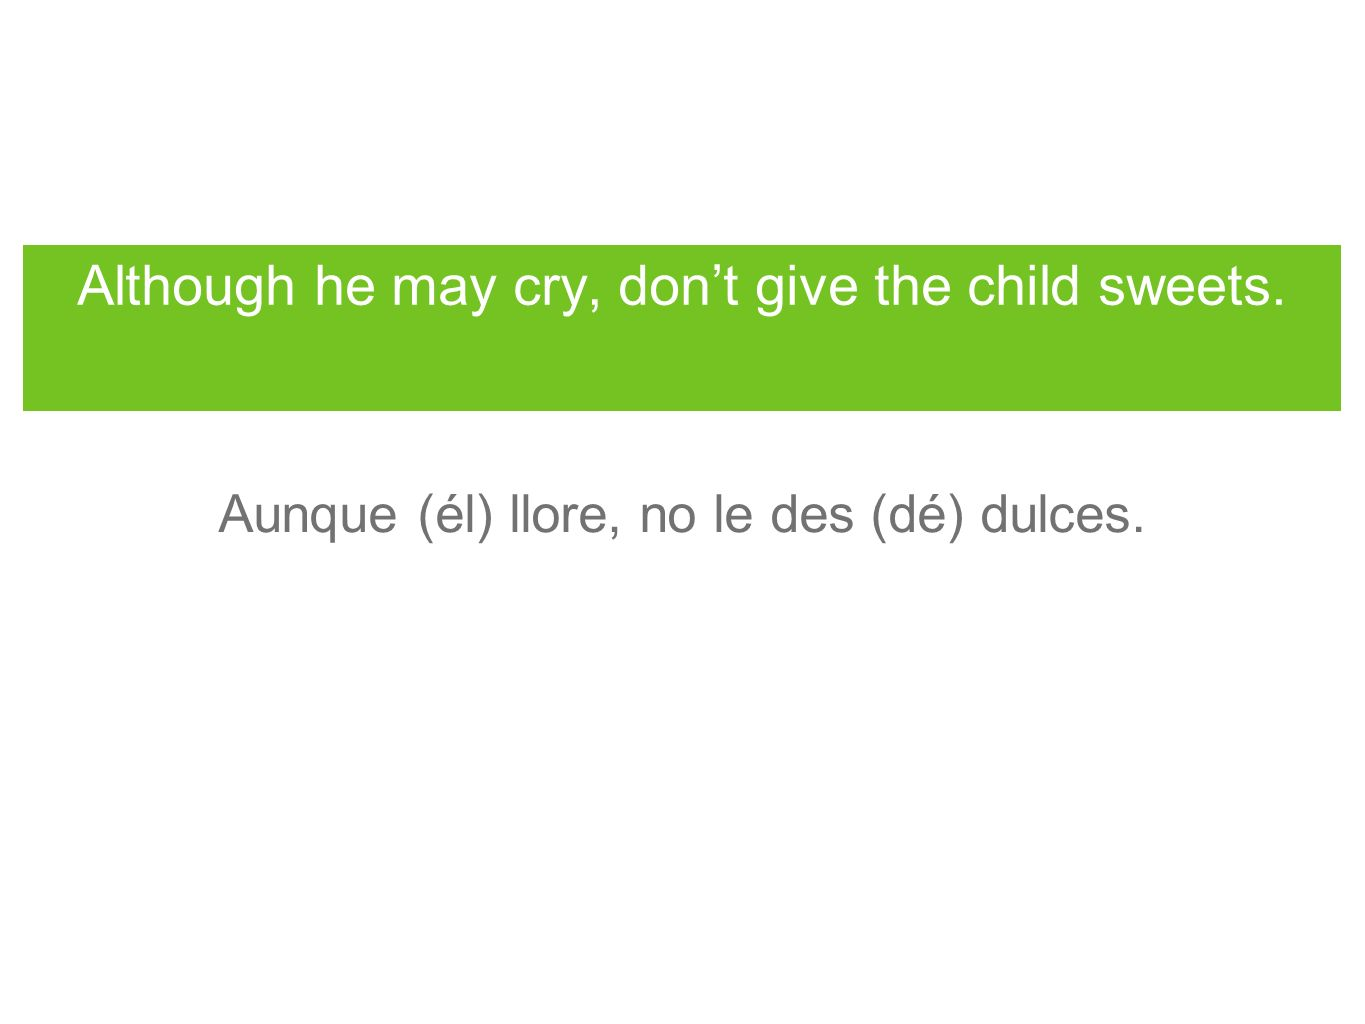 Although he may cry, dont give the child sweets. Aunque (él) llore, no le des (dé) dulces.